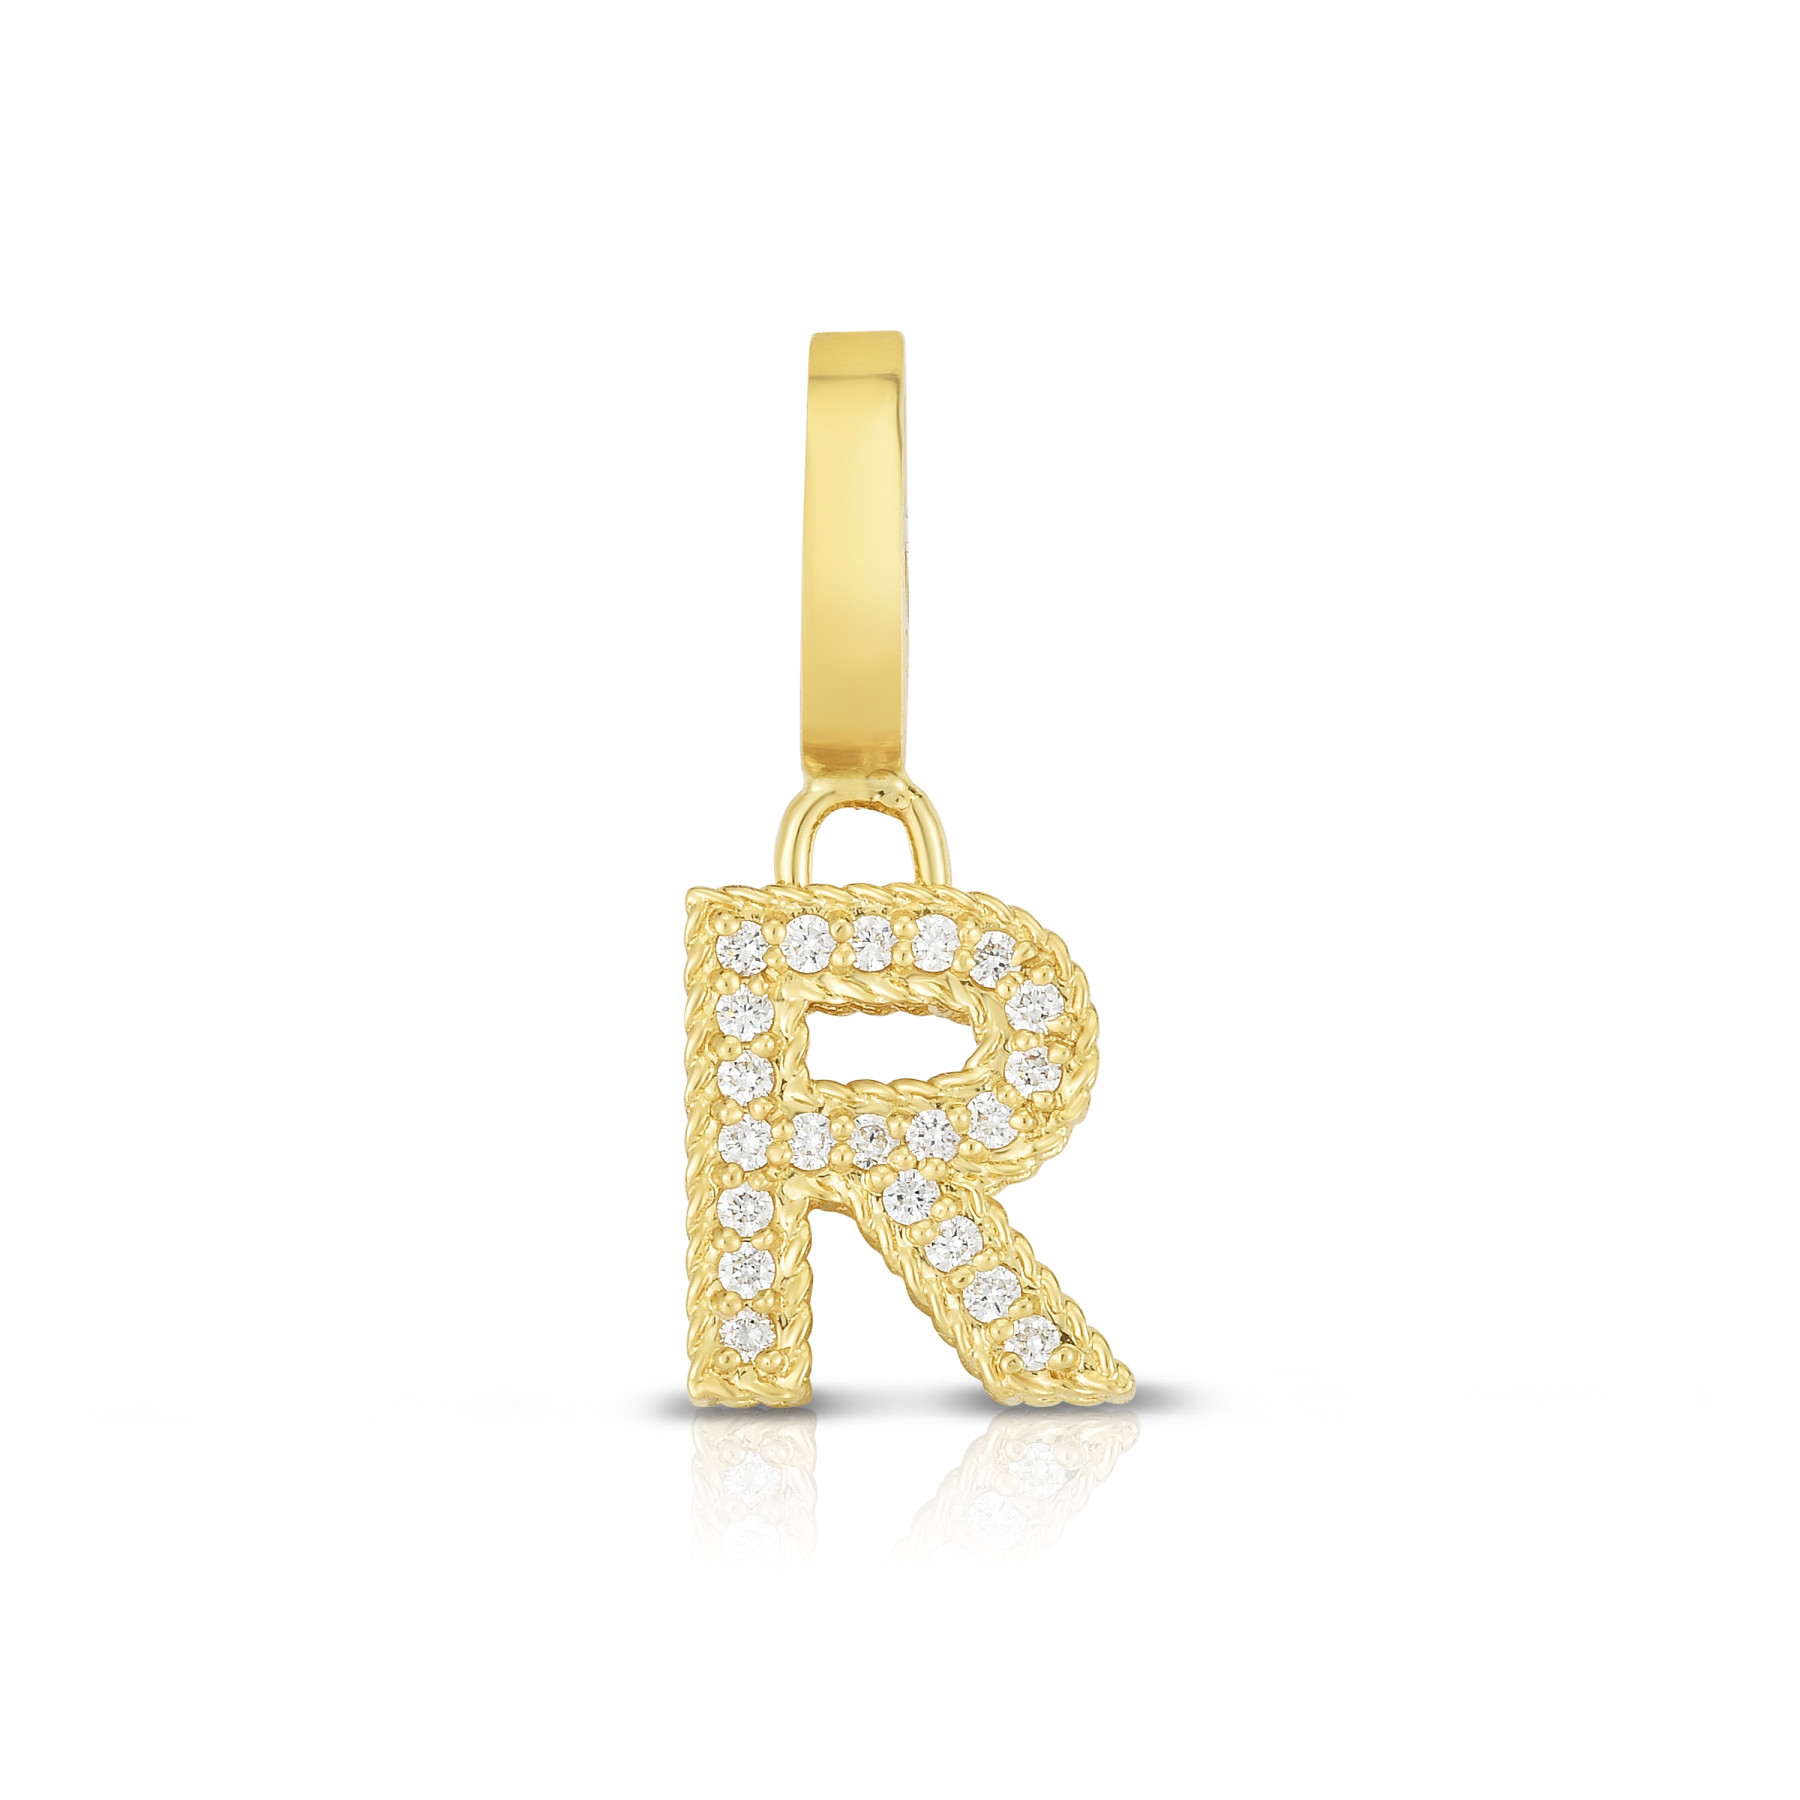 Roberto Coin Diamond Letter M Charm in Yellow Gold